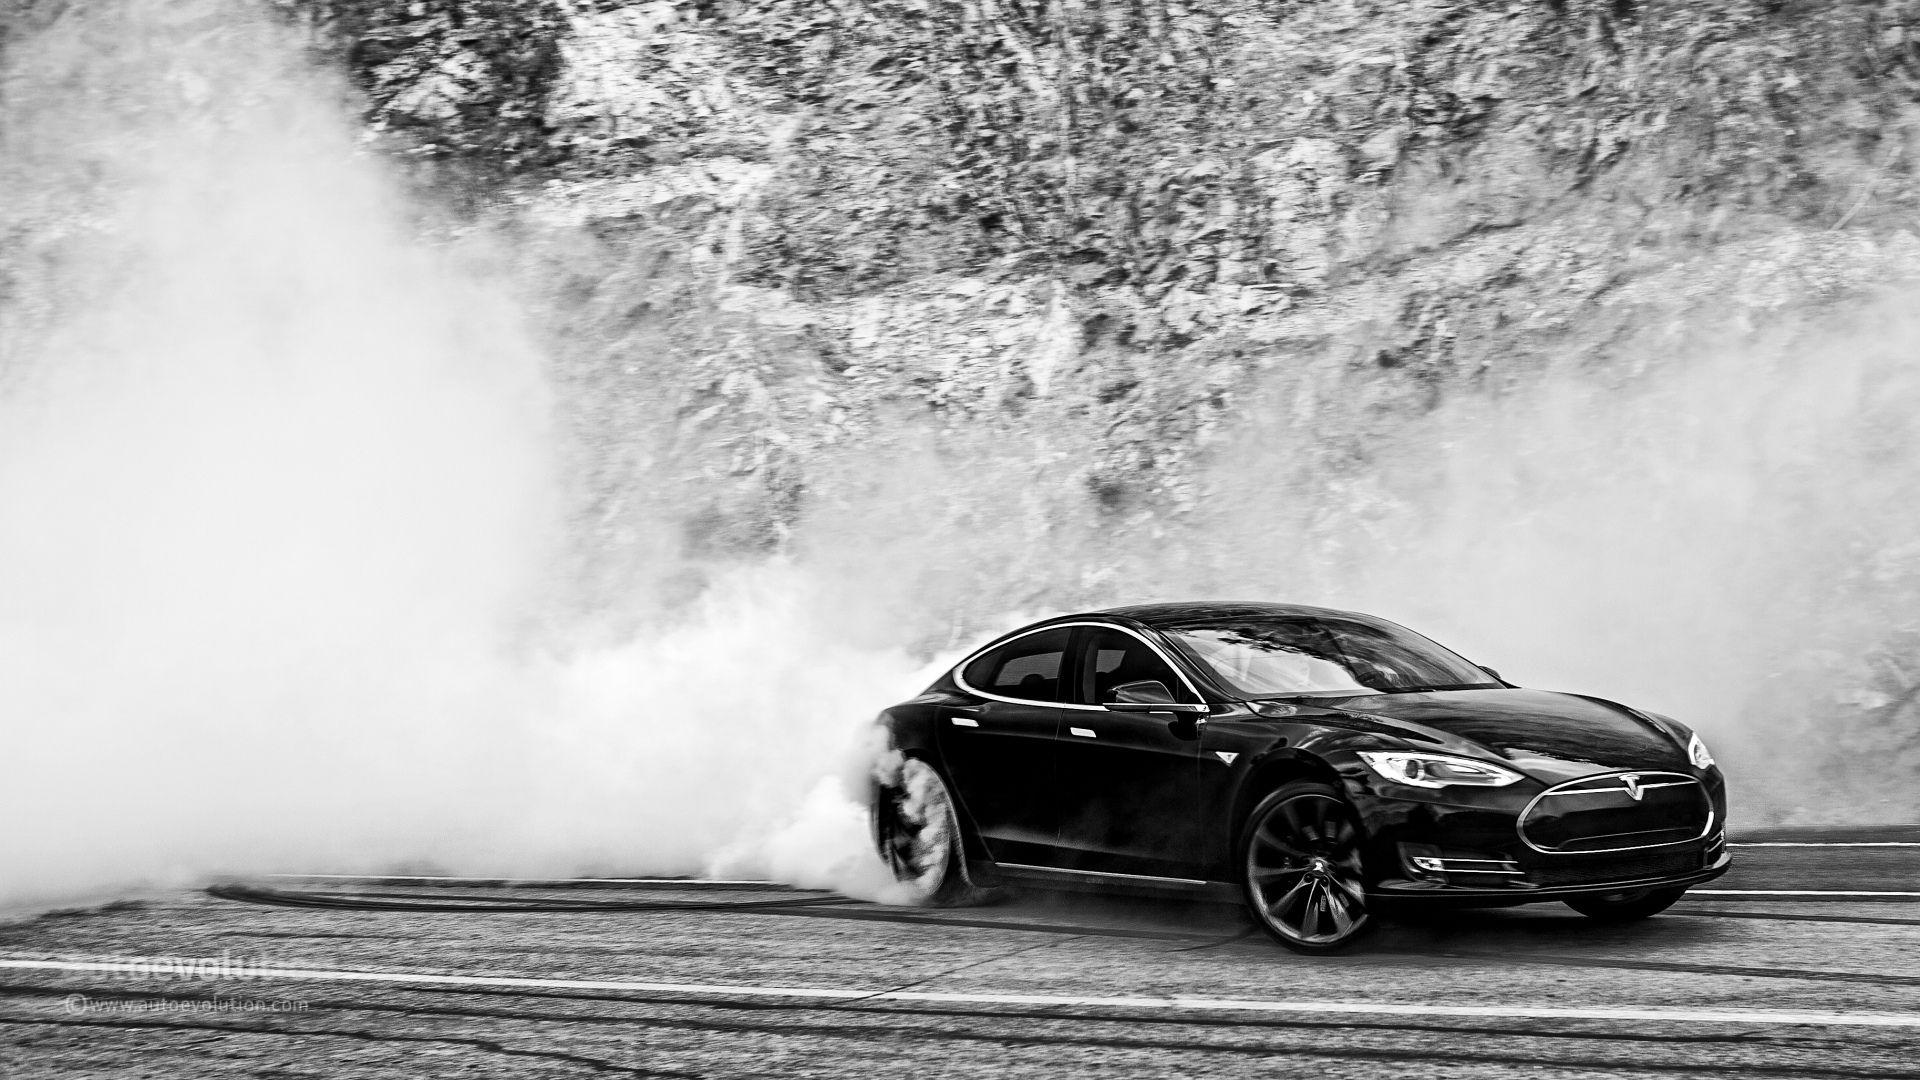 Tesla Model S Doing Monster Burnouts: HD Wallpapers - autoevolution